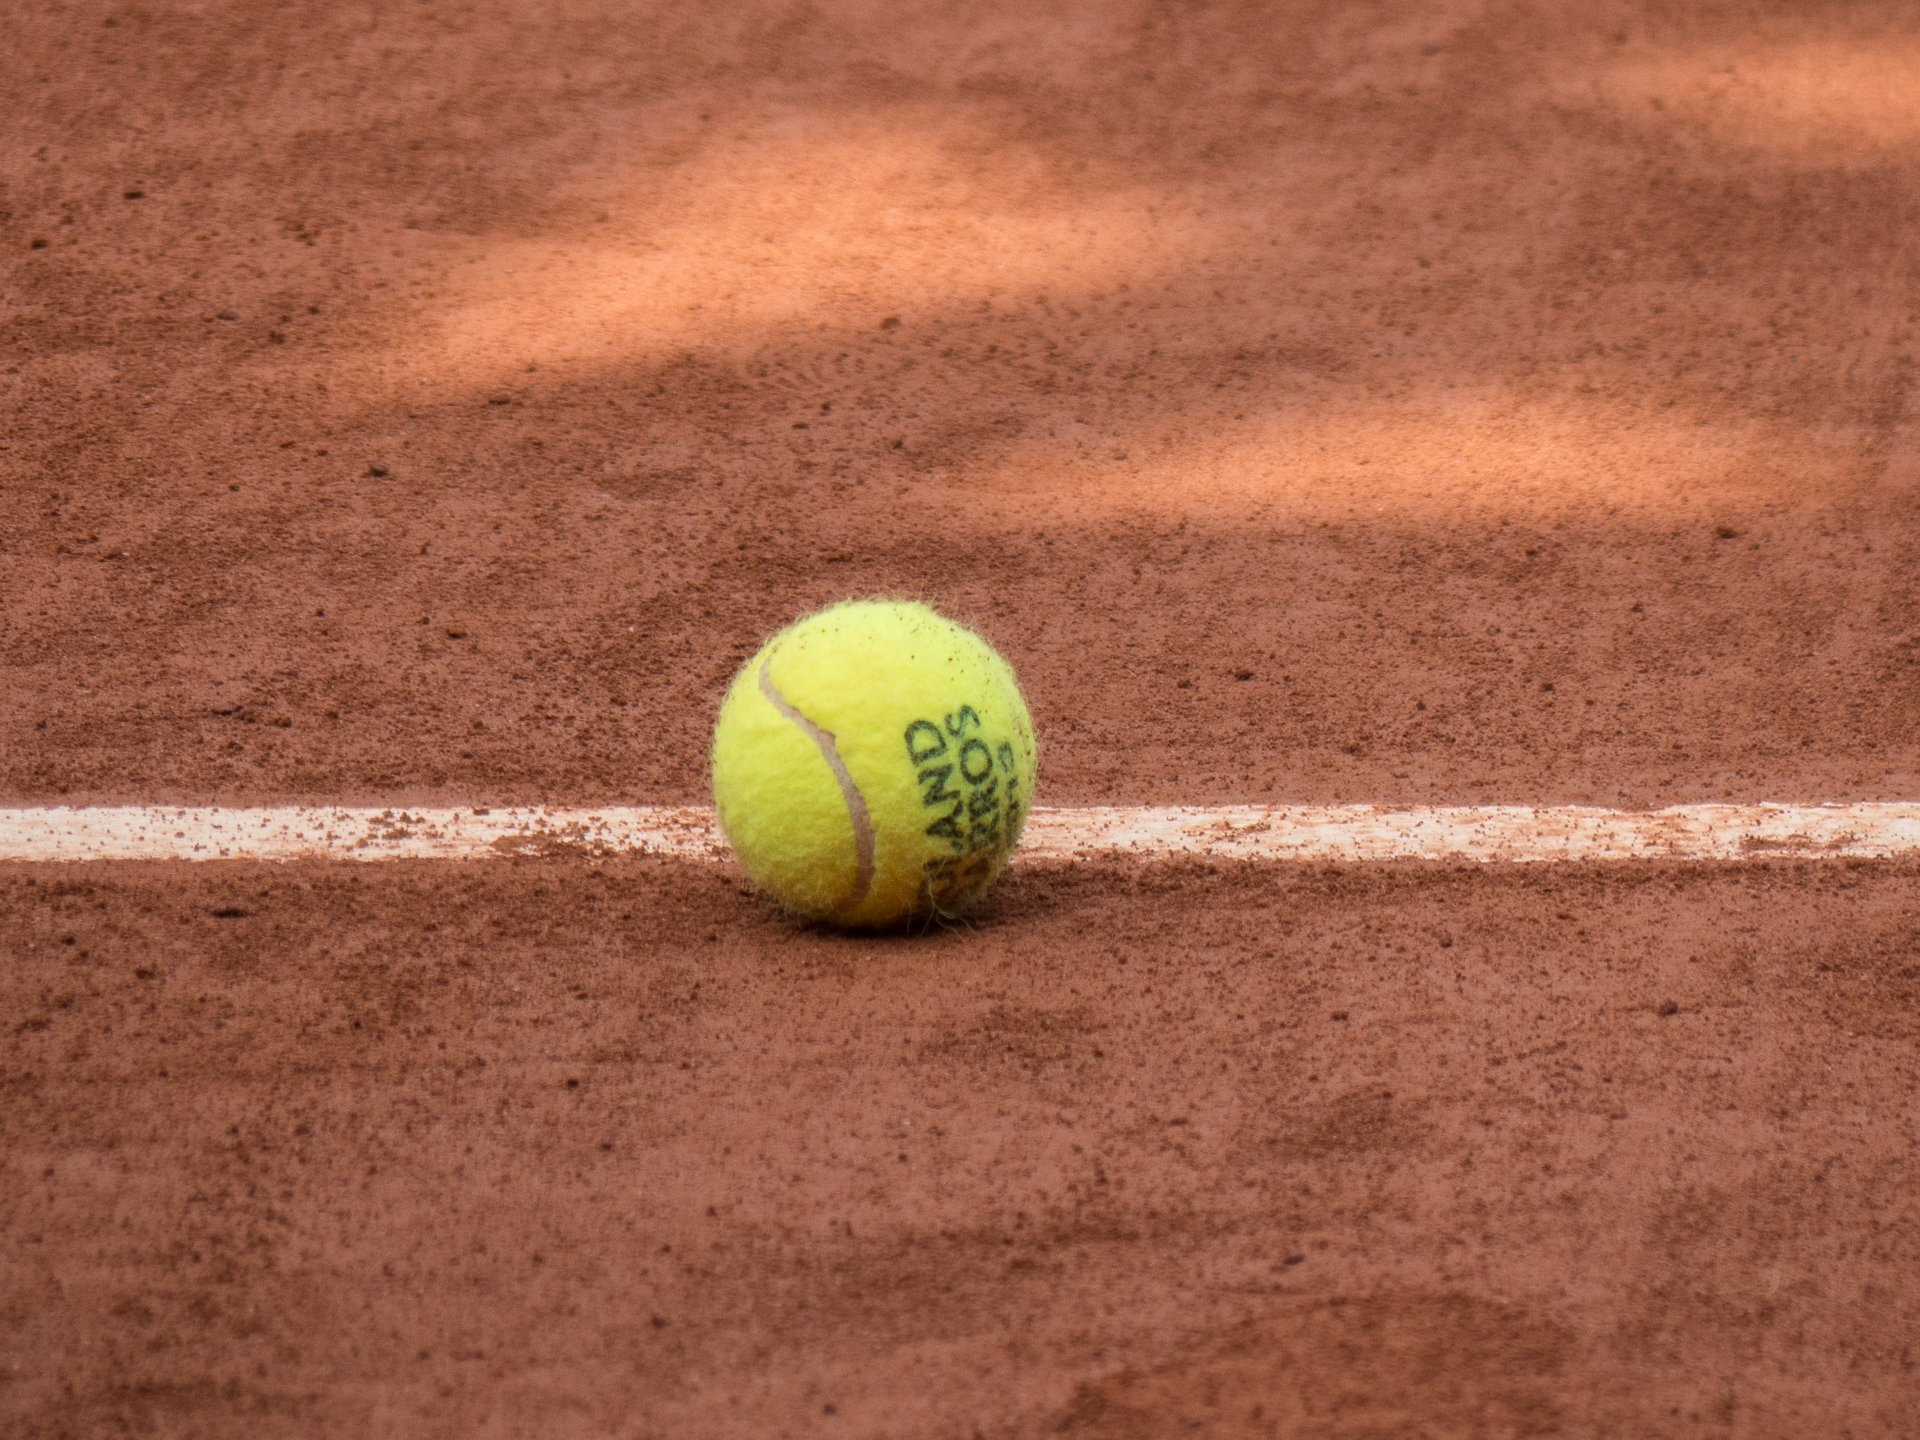 French Open (Roland Garros) in Paris - Best Season 2020